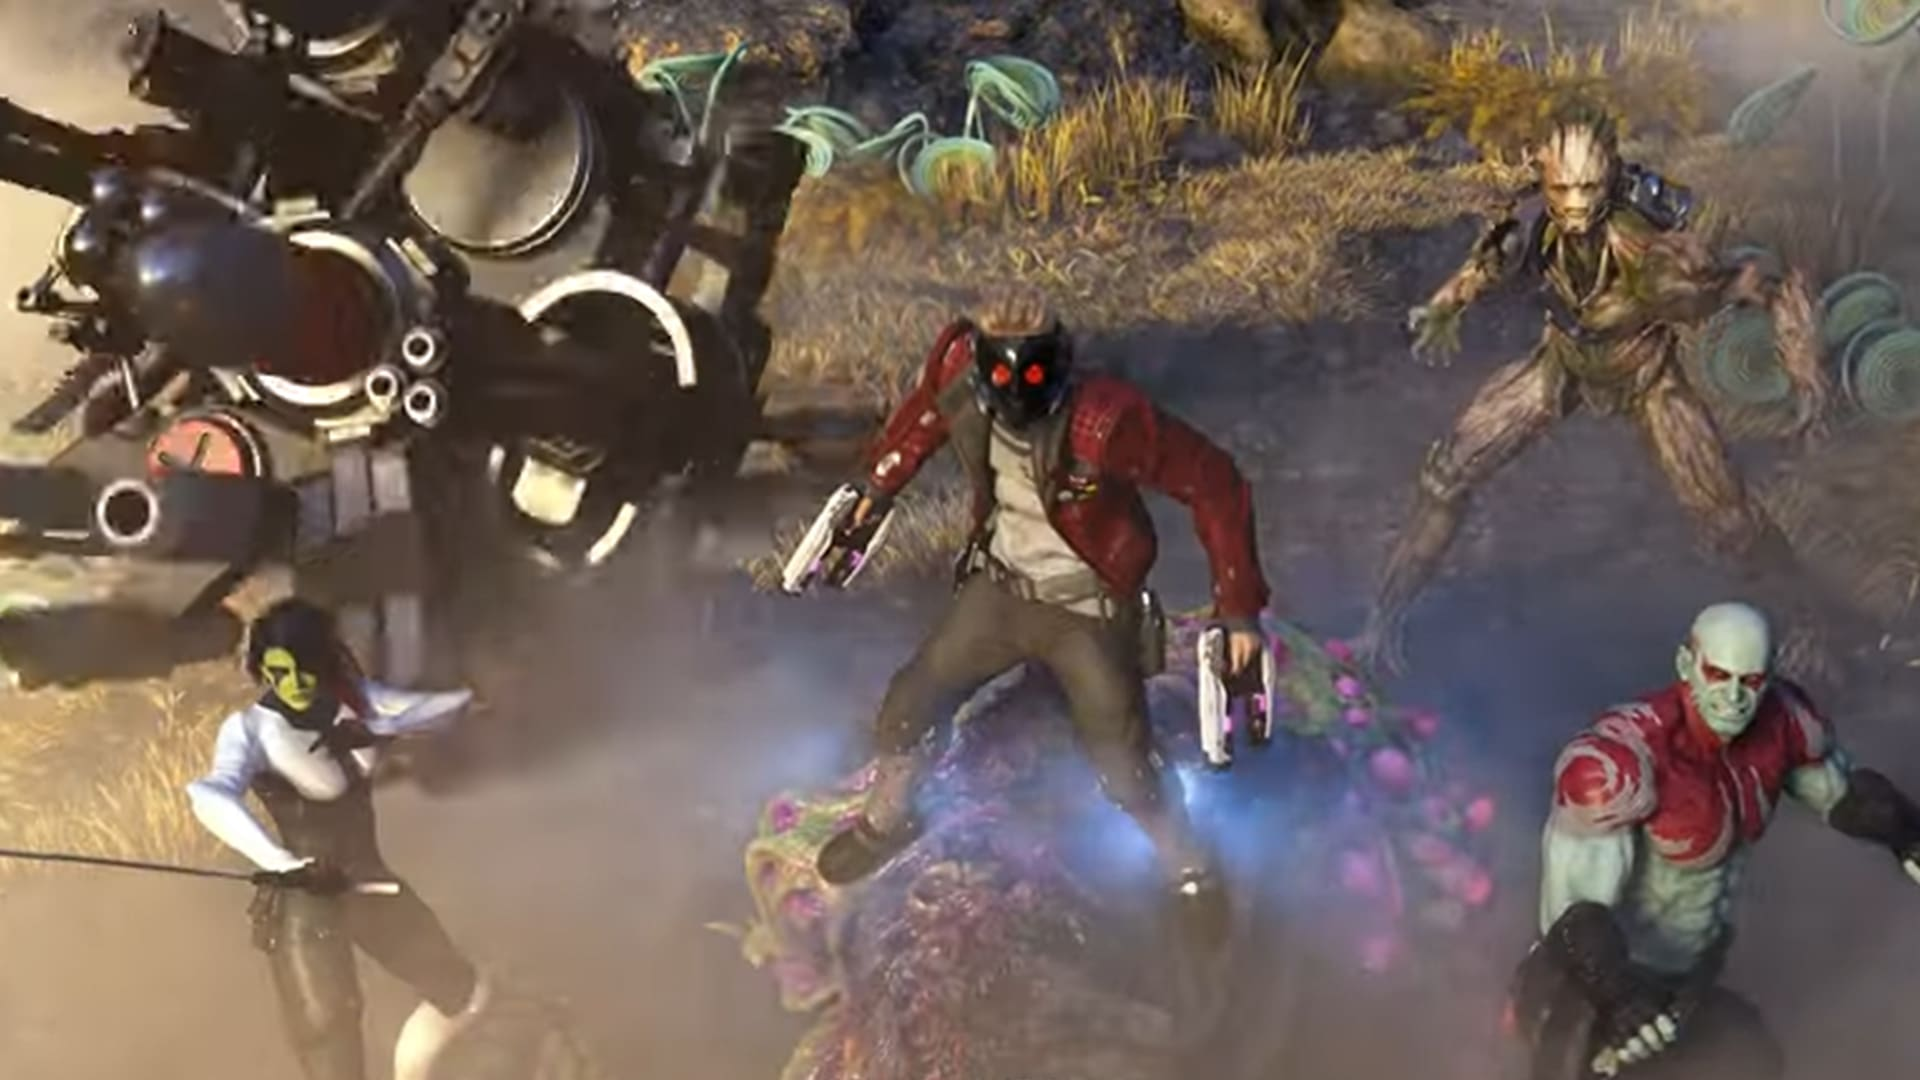 Gamora, Star-Lord, Groot and Drax ready to fight from Marvel's Guardians of the Galaxy video game